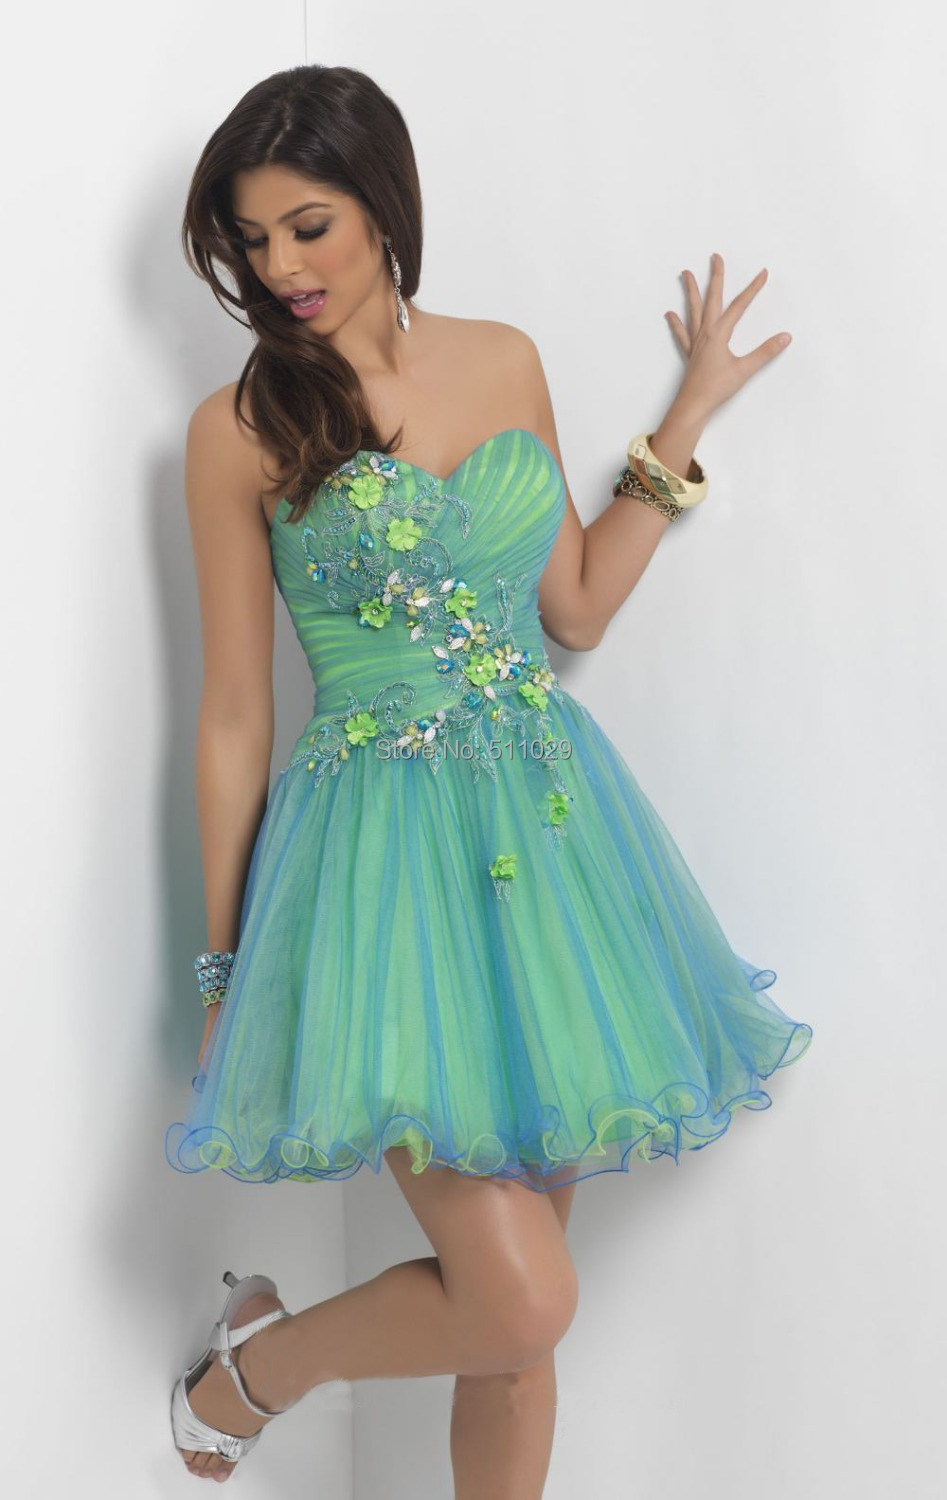 FREE SHIPPING OD 375 Mid length beachwear cocktail party dress teen party  cocktail dresses of 13 18 years old-in Cocktail Dresses from Weddings    Events on ... e62aa9ba2